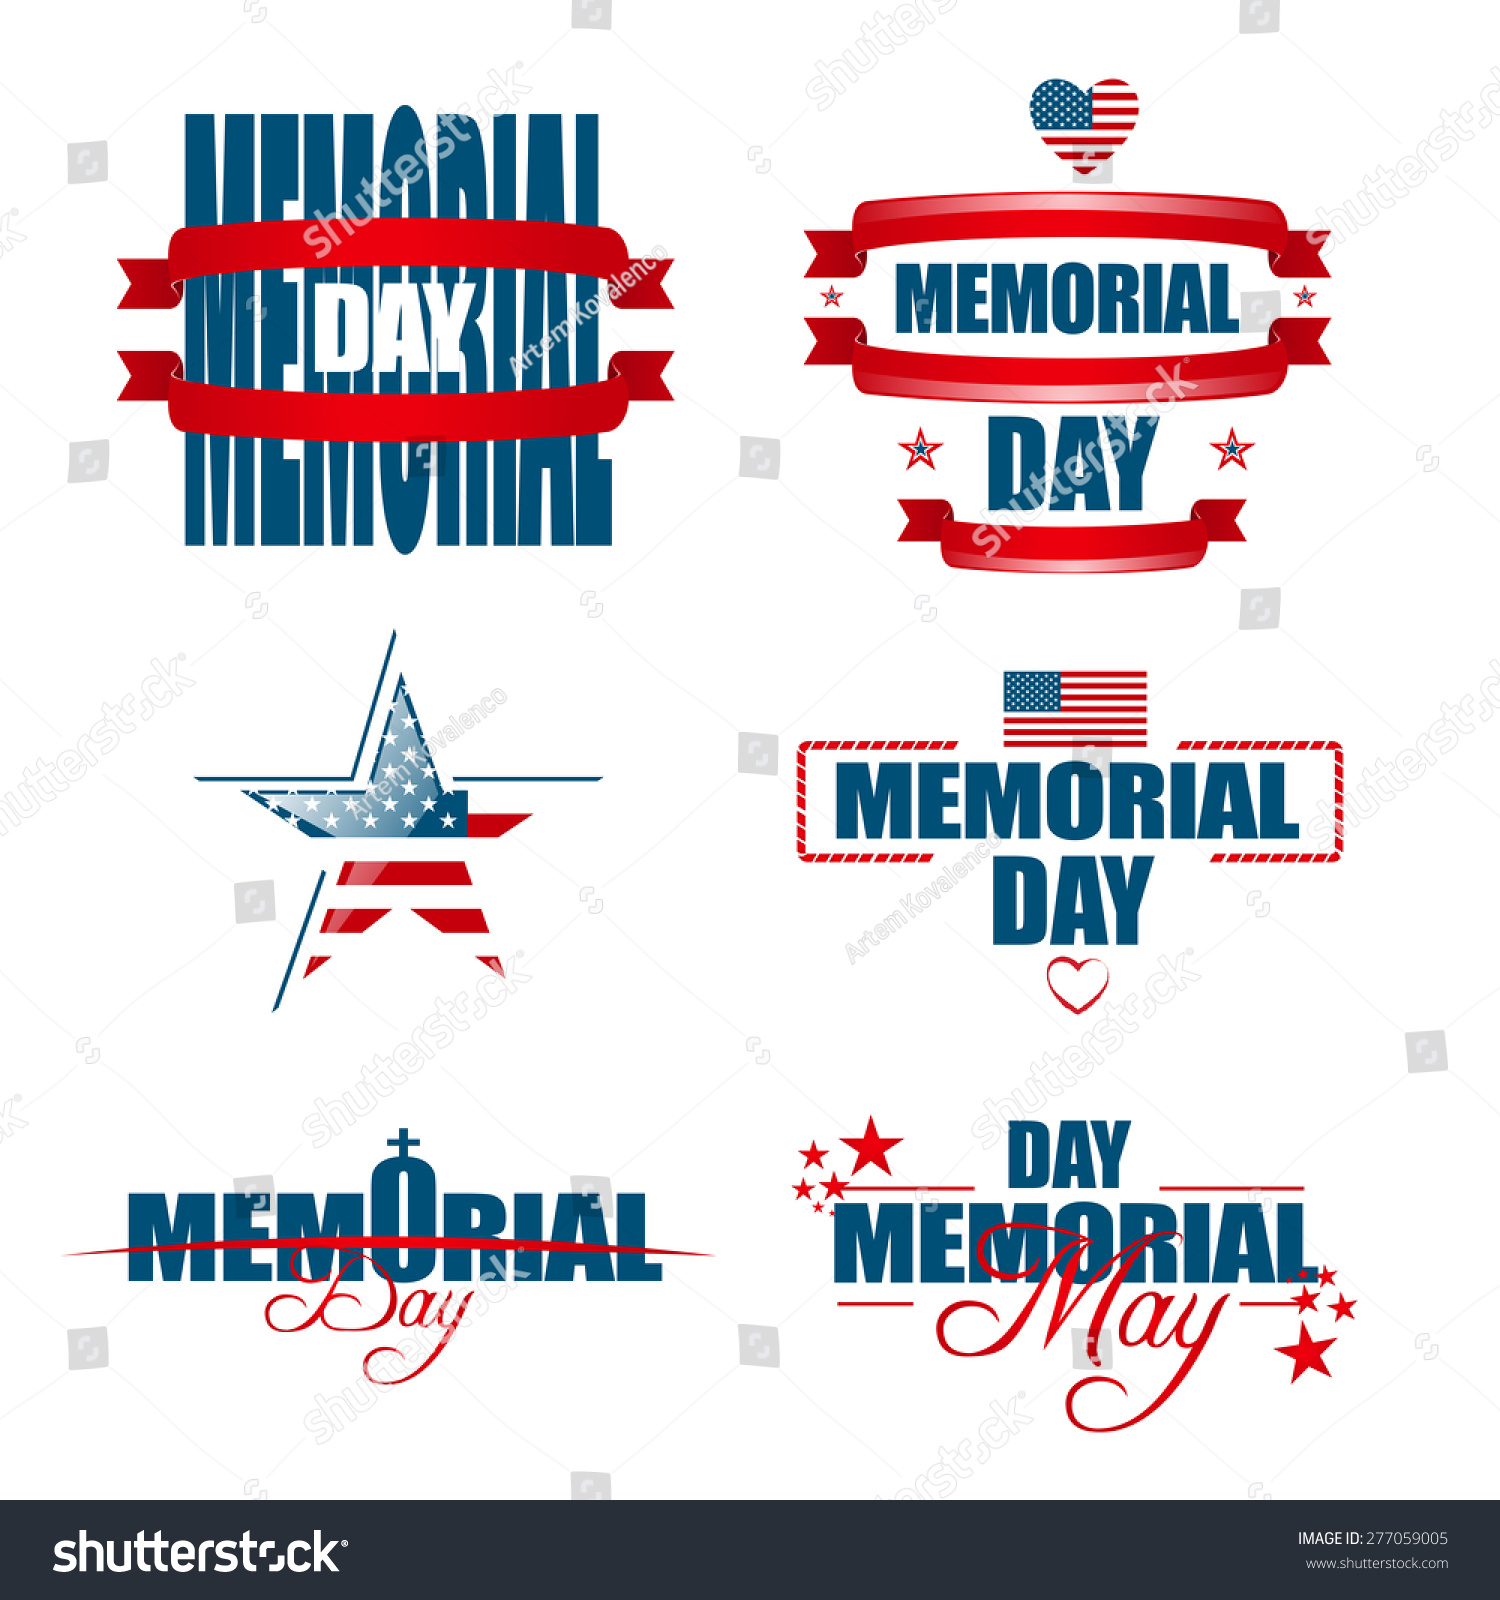 vector illustration on memorial day we stock vector  vector illustration on memorial day we remember you design and of gift coupons